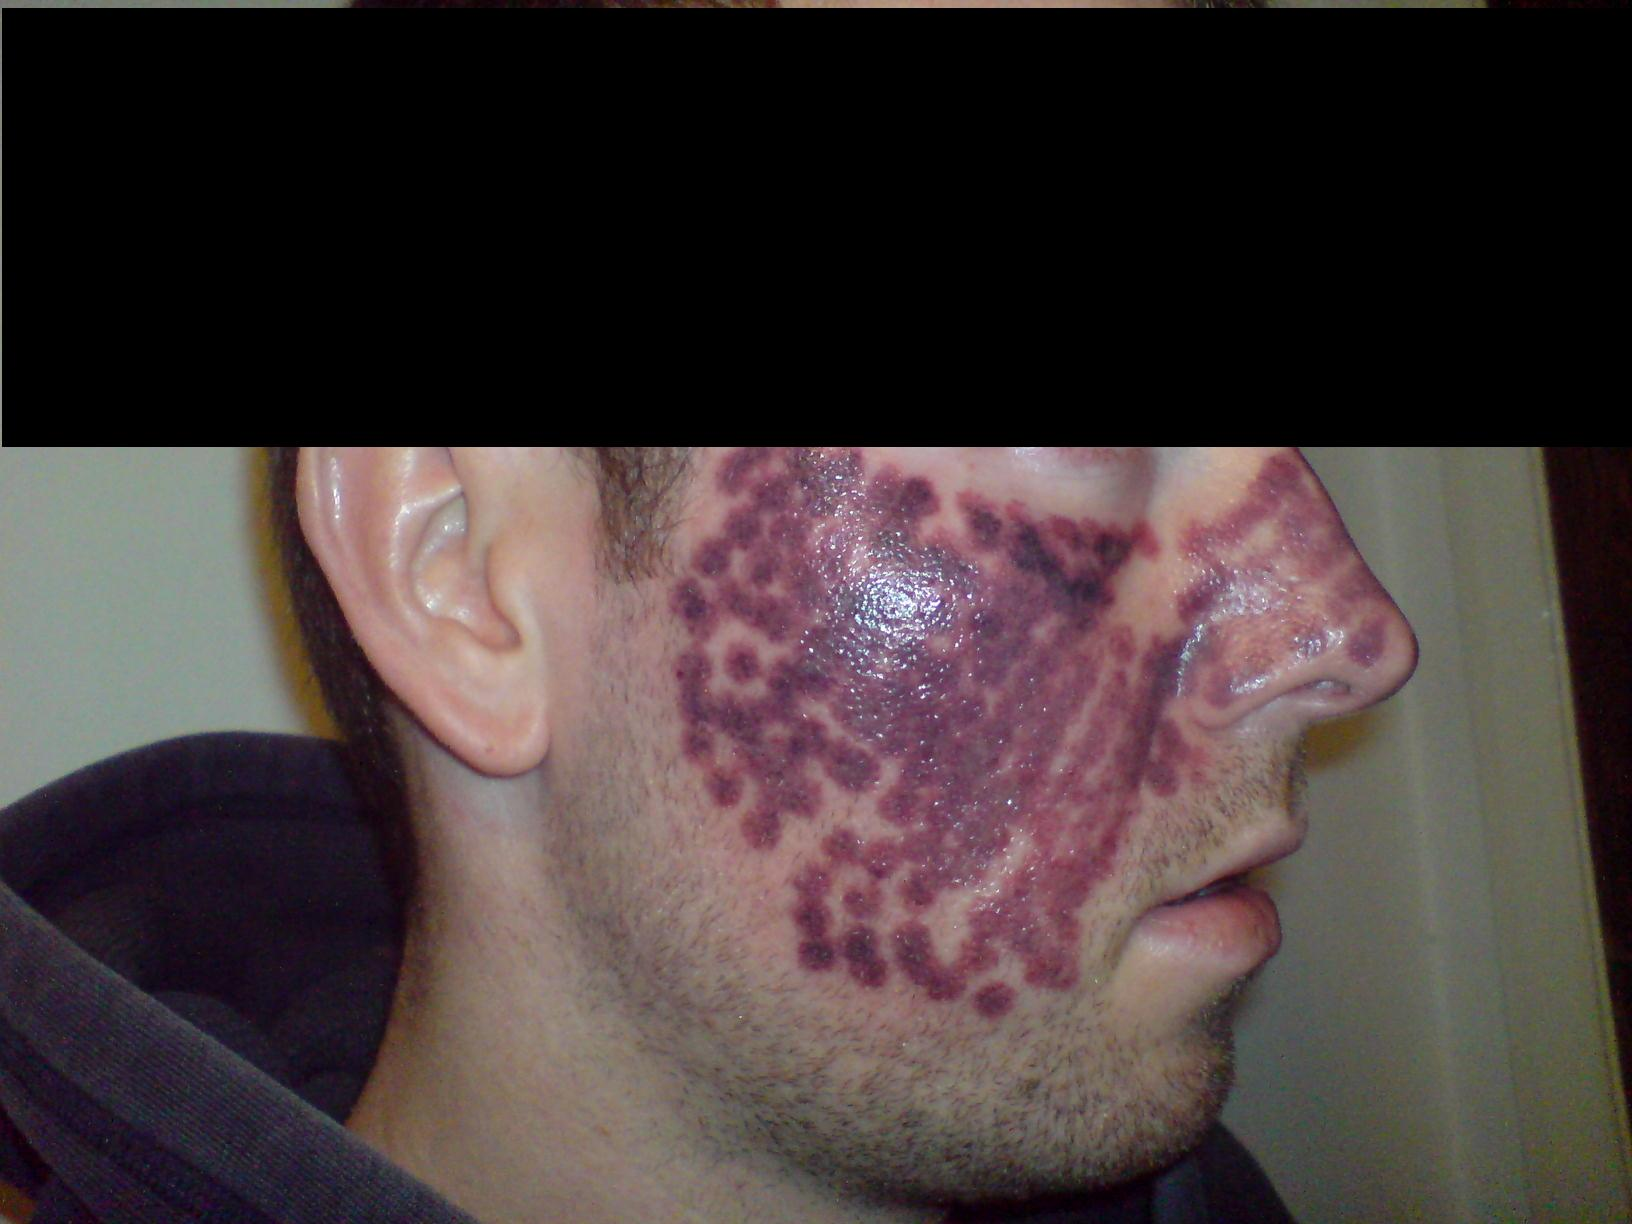 Vbeam After The Treatment Pics Other Acne Treatments